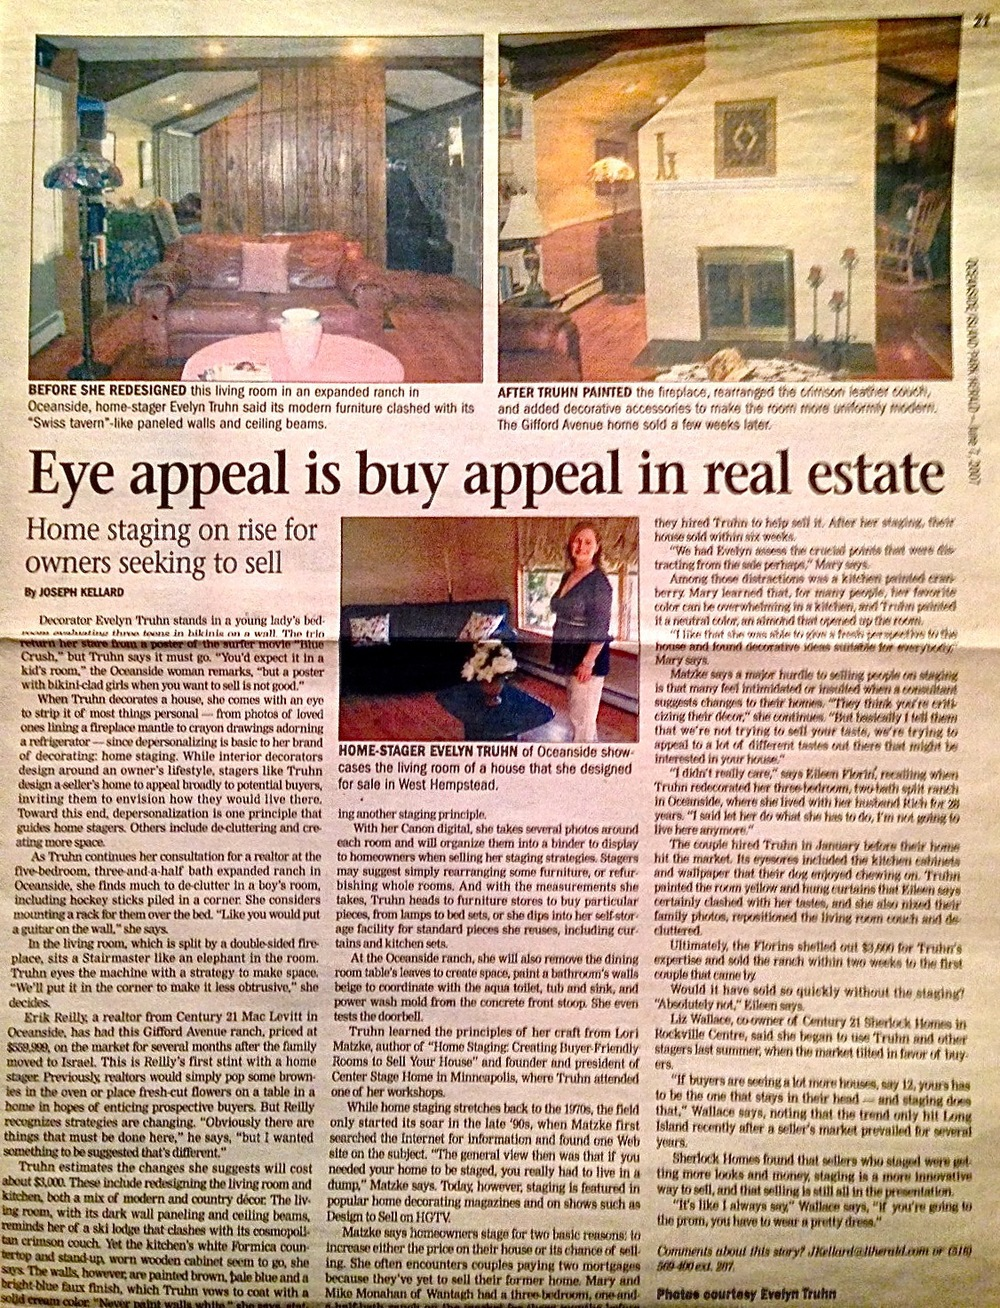 This story on homestager Evelyn Truhn originally appeared in the Oceanside/Island Park Herald in 2007.